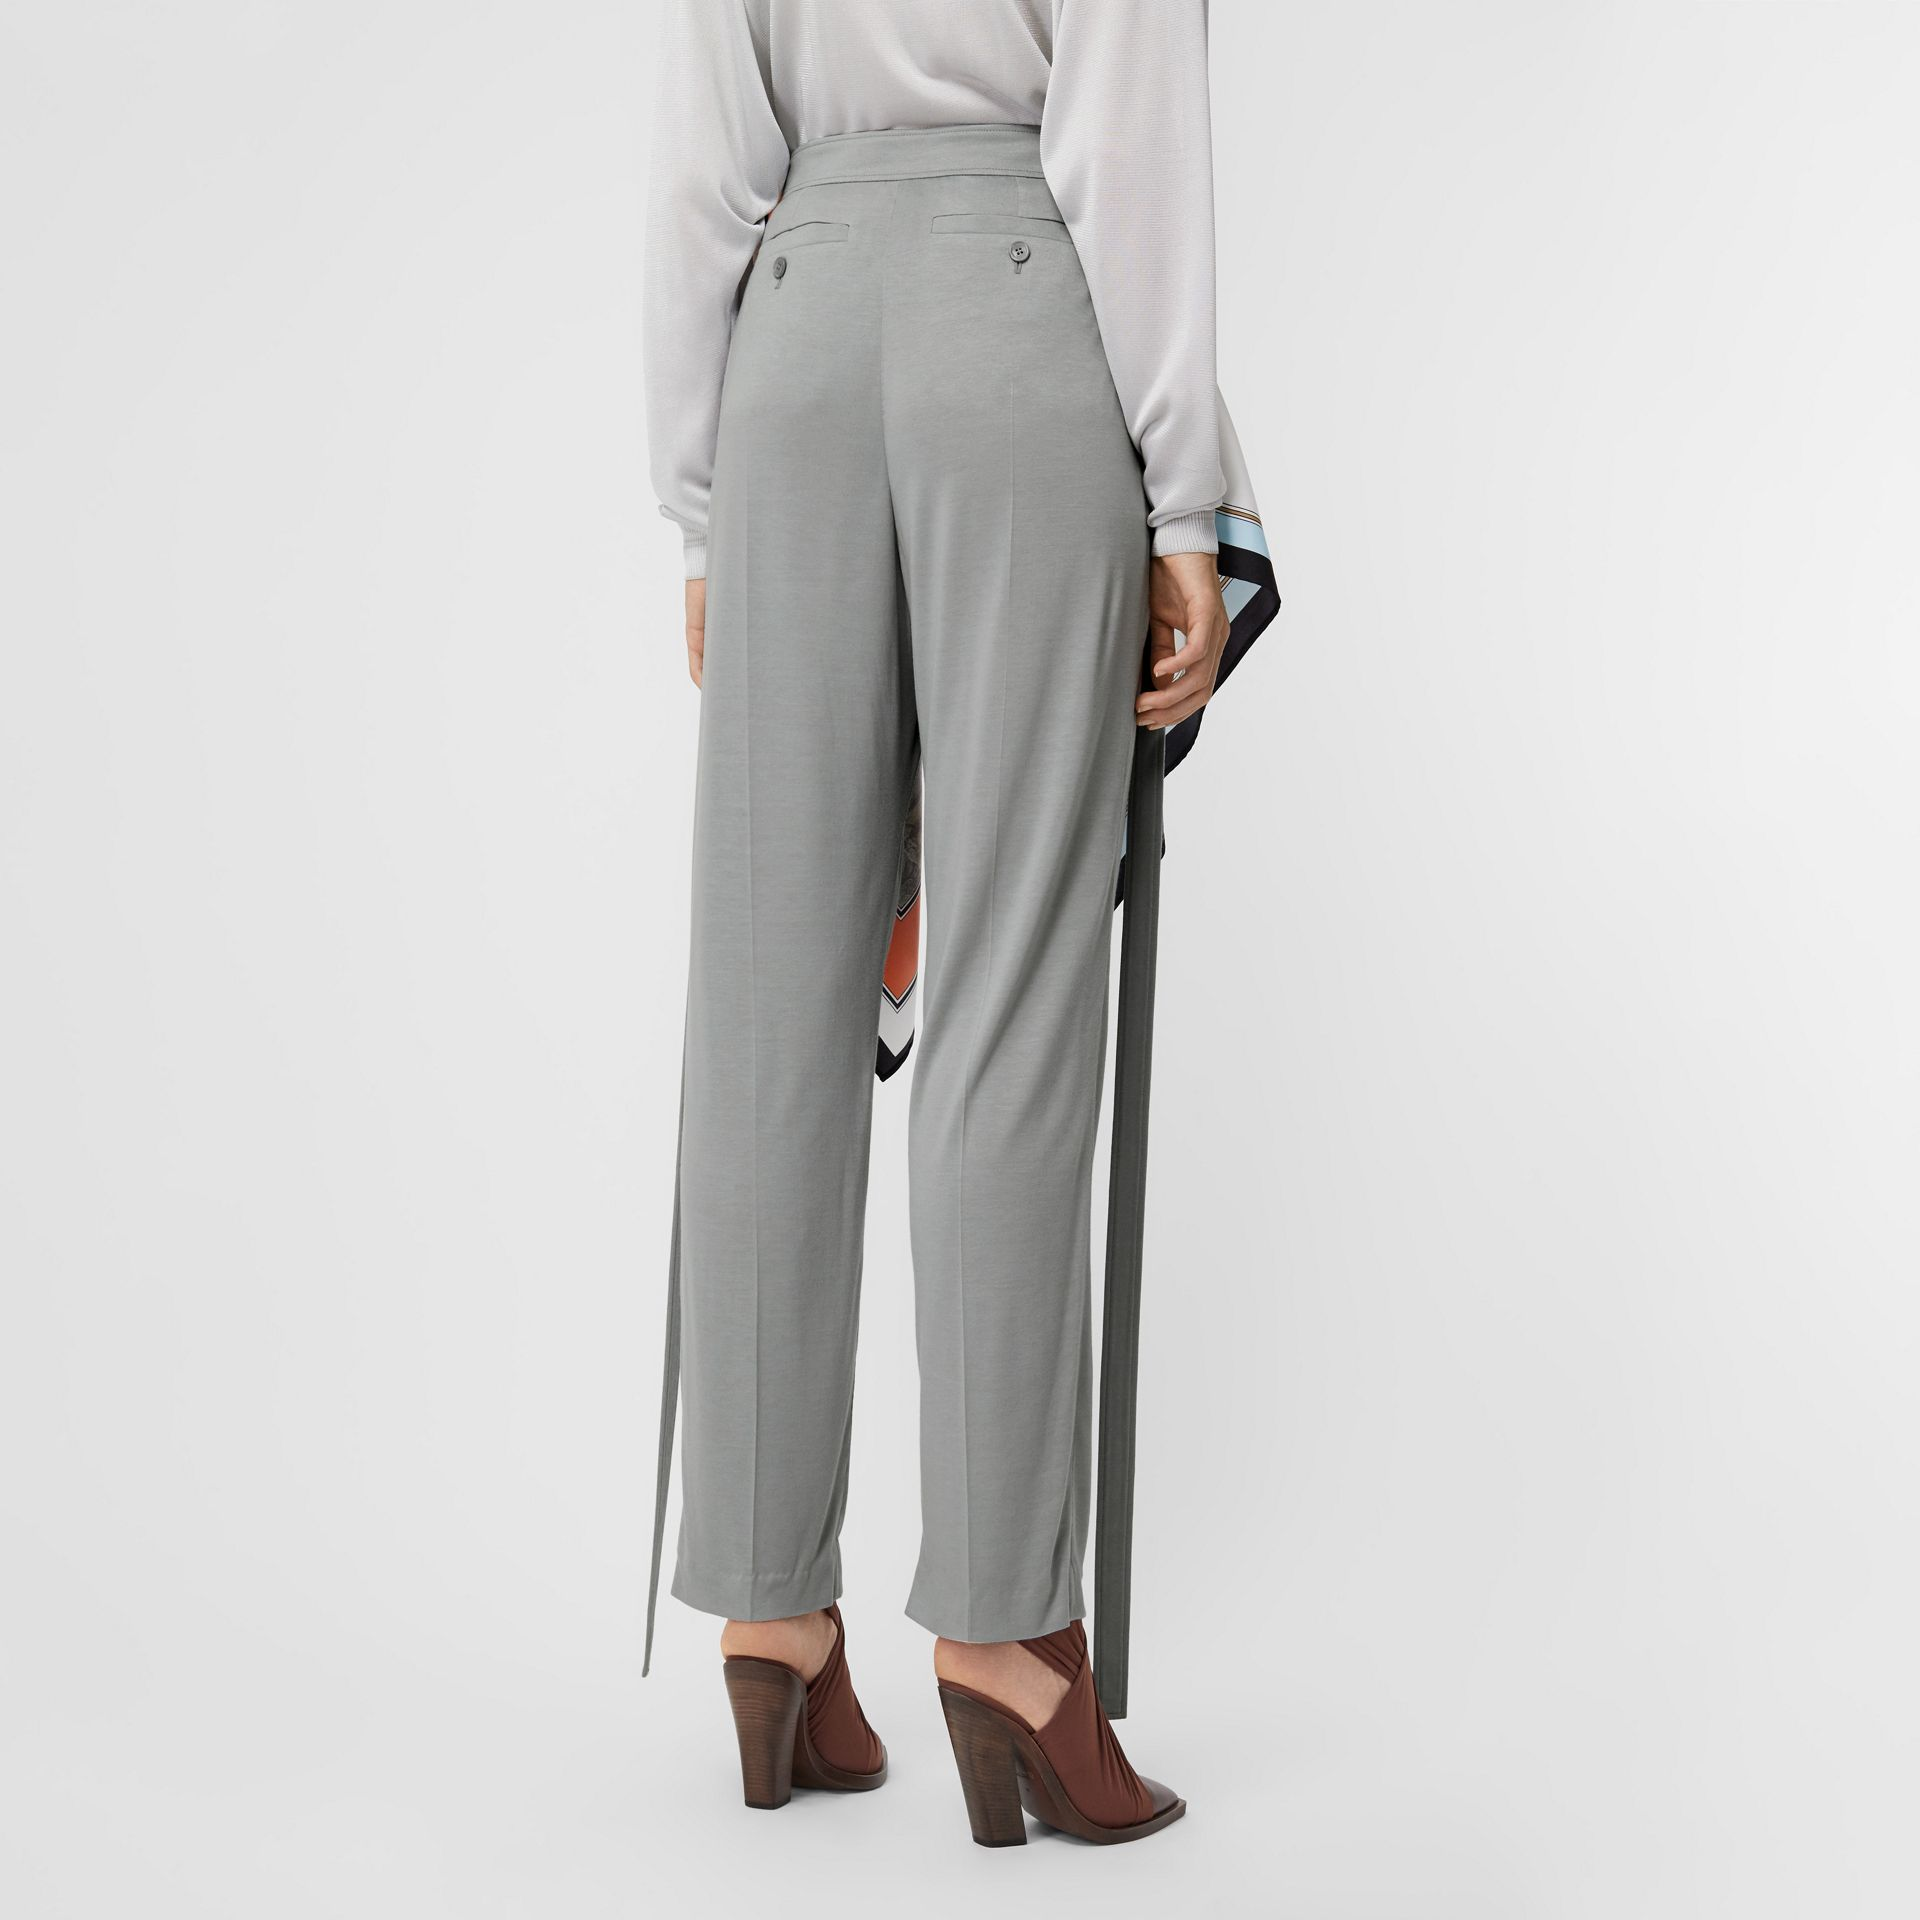 Strap Detail Jersey Tailored Trousers in Heather Melange - Women | Burberry Canada - gallery image 2